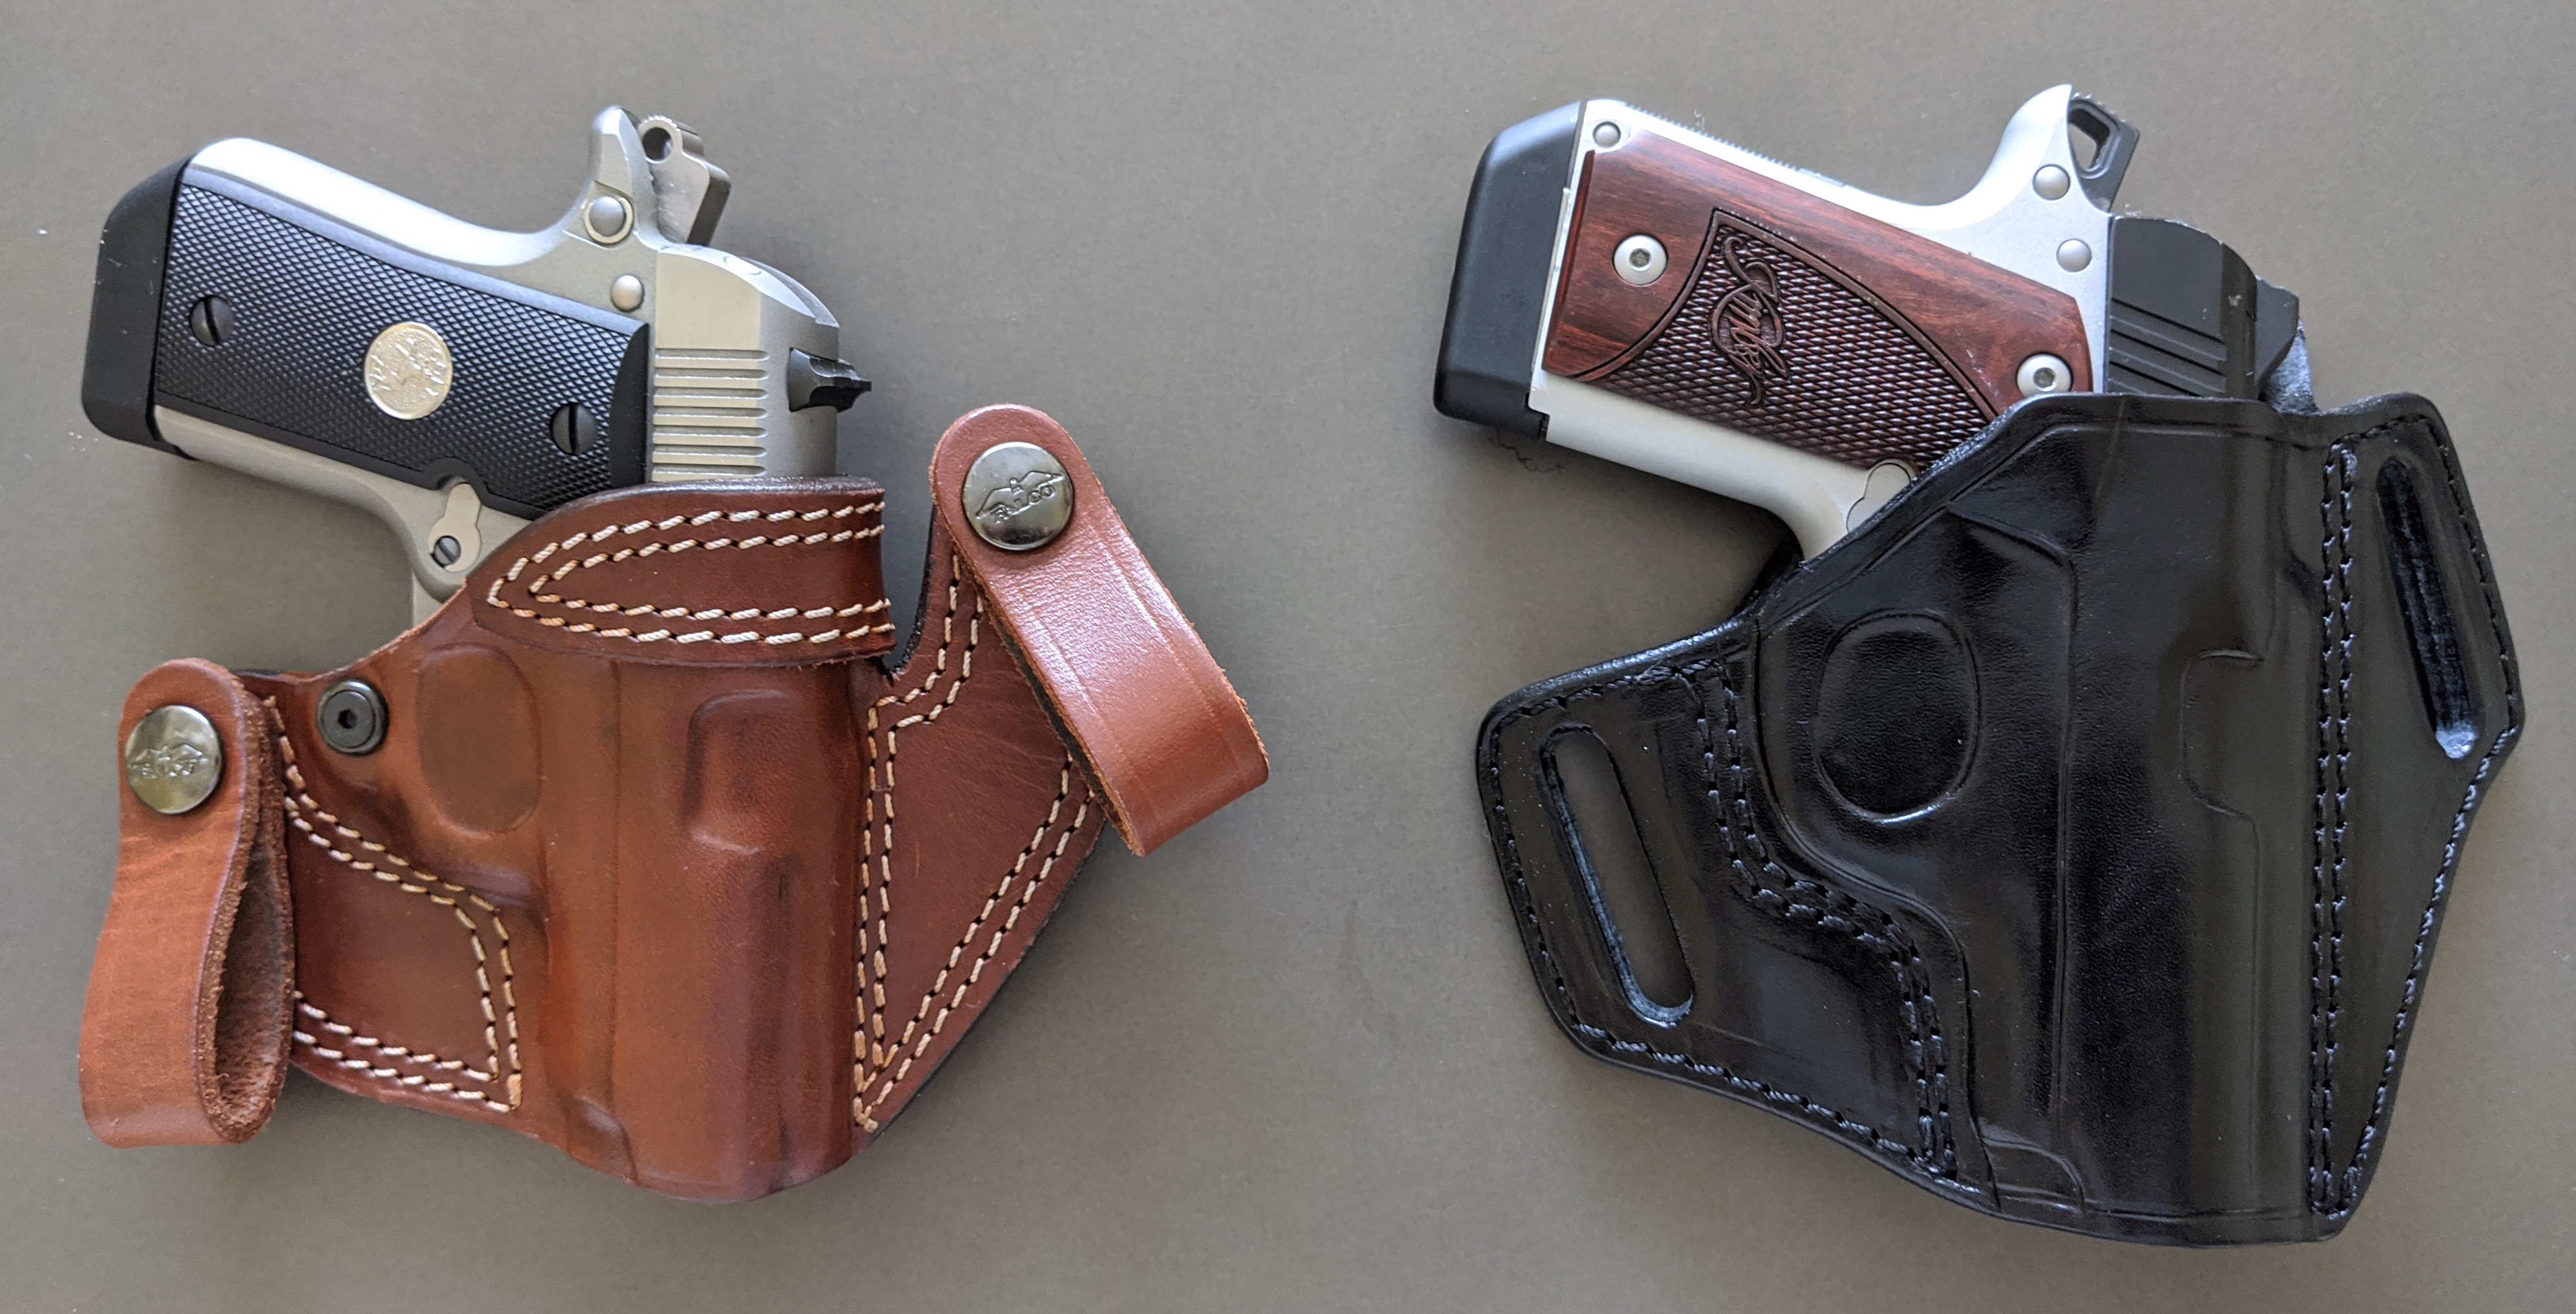 Craft Holsters Review Part 2 In My Last Article Craft Holsters Are By Covert Tactical Tactical Gear Rocks